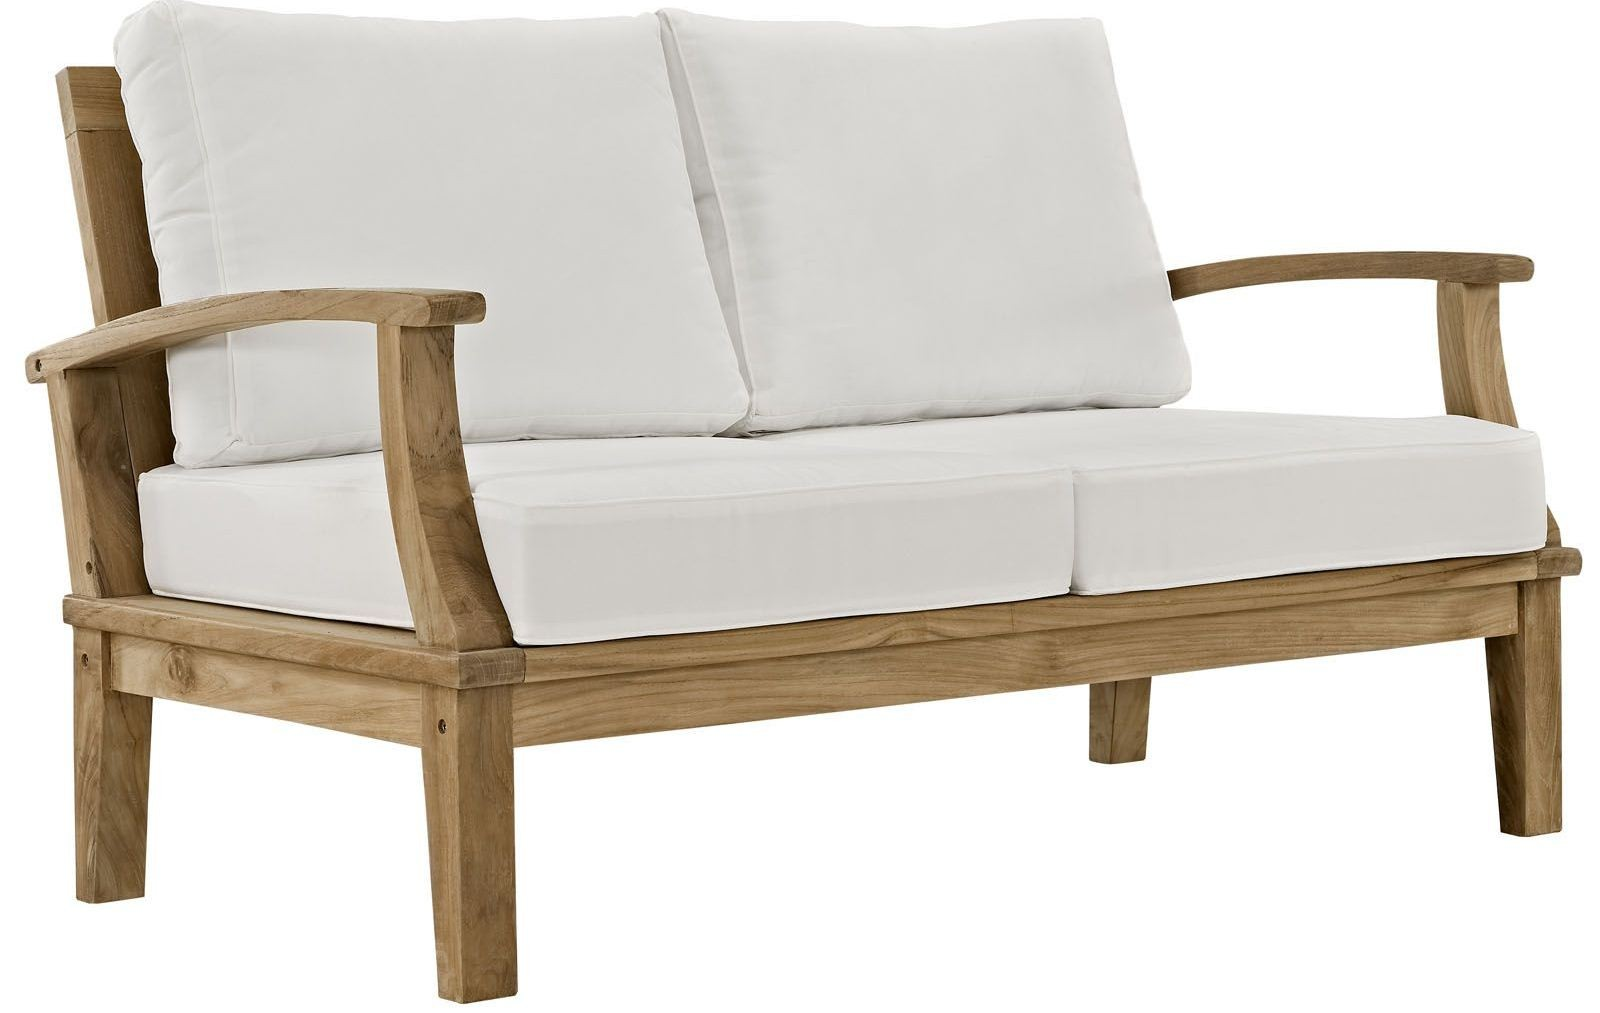 Marina Natural White Outdoor Patio Teak Loveseat From Renegade Eei 1144 Coleman Furniture